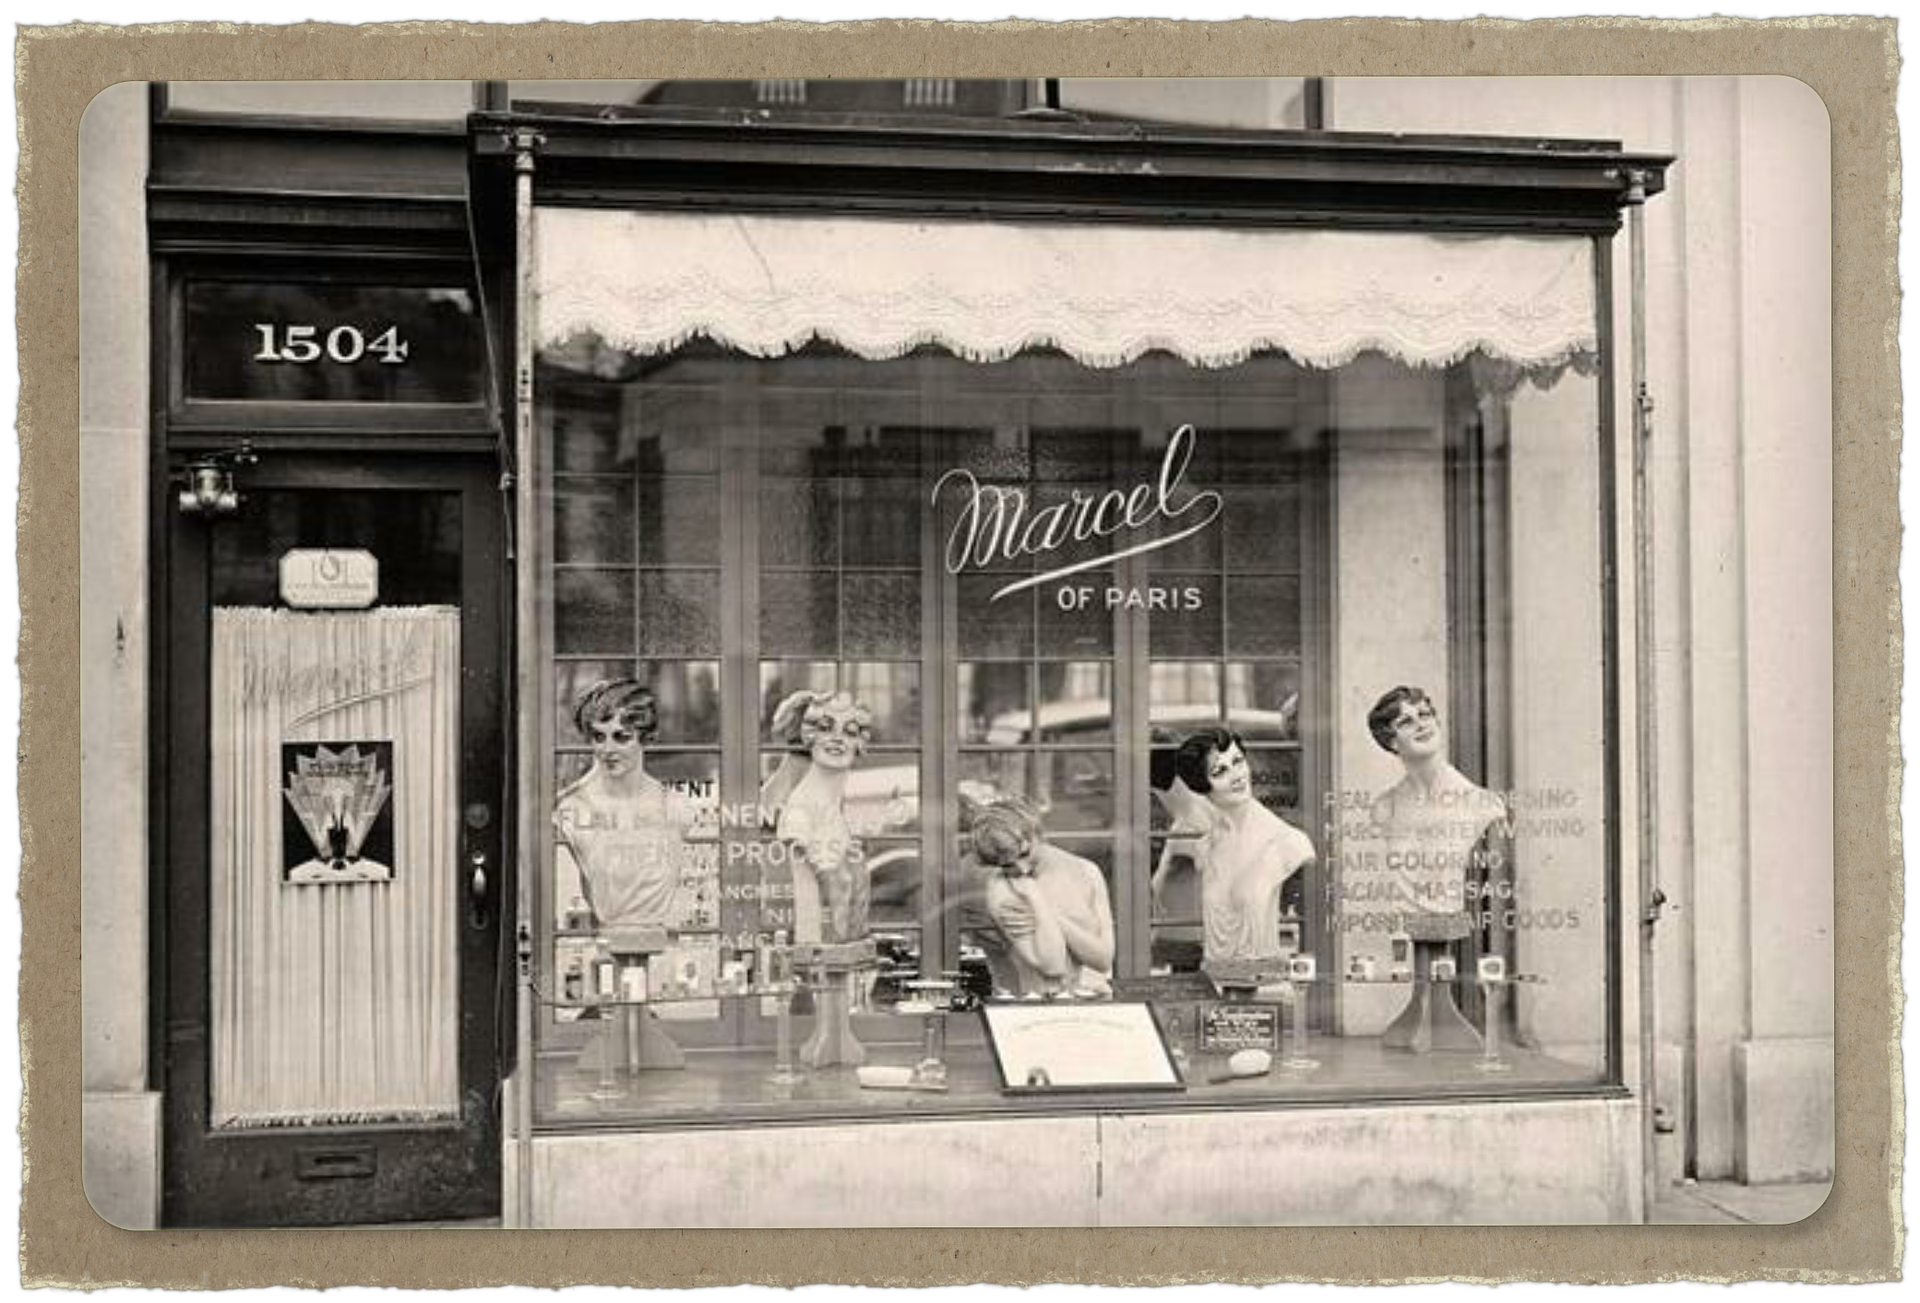 Shop fronts and signage